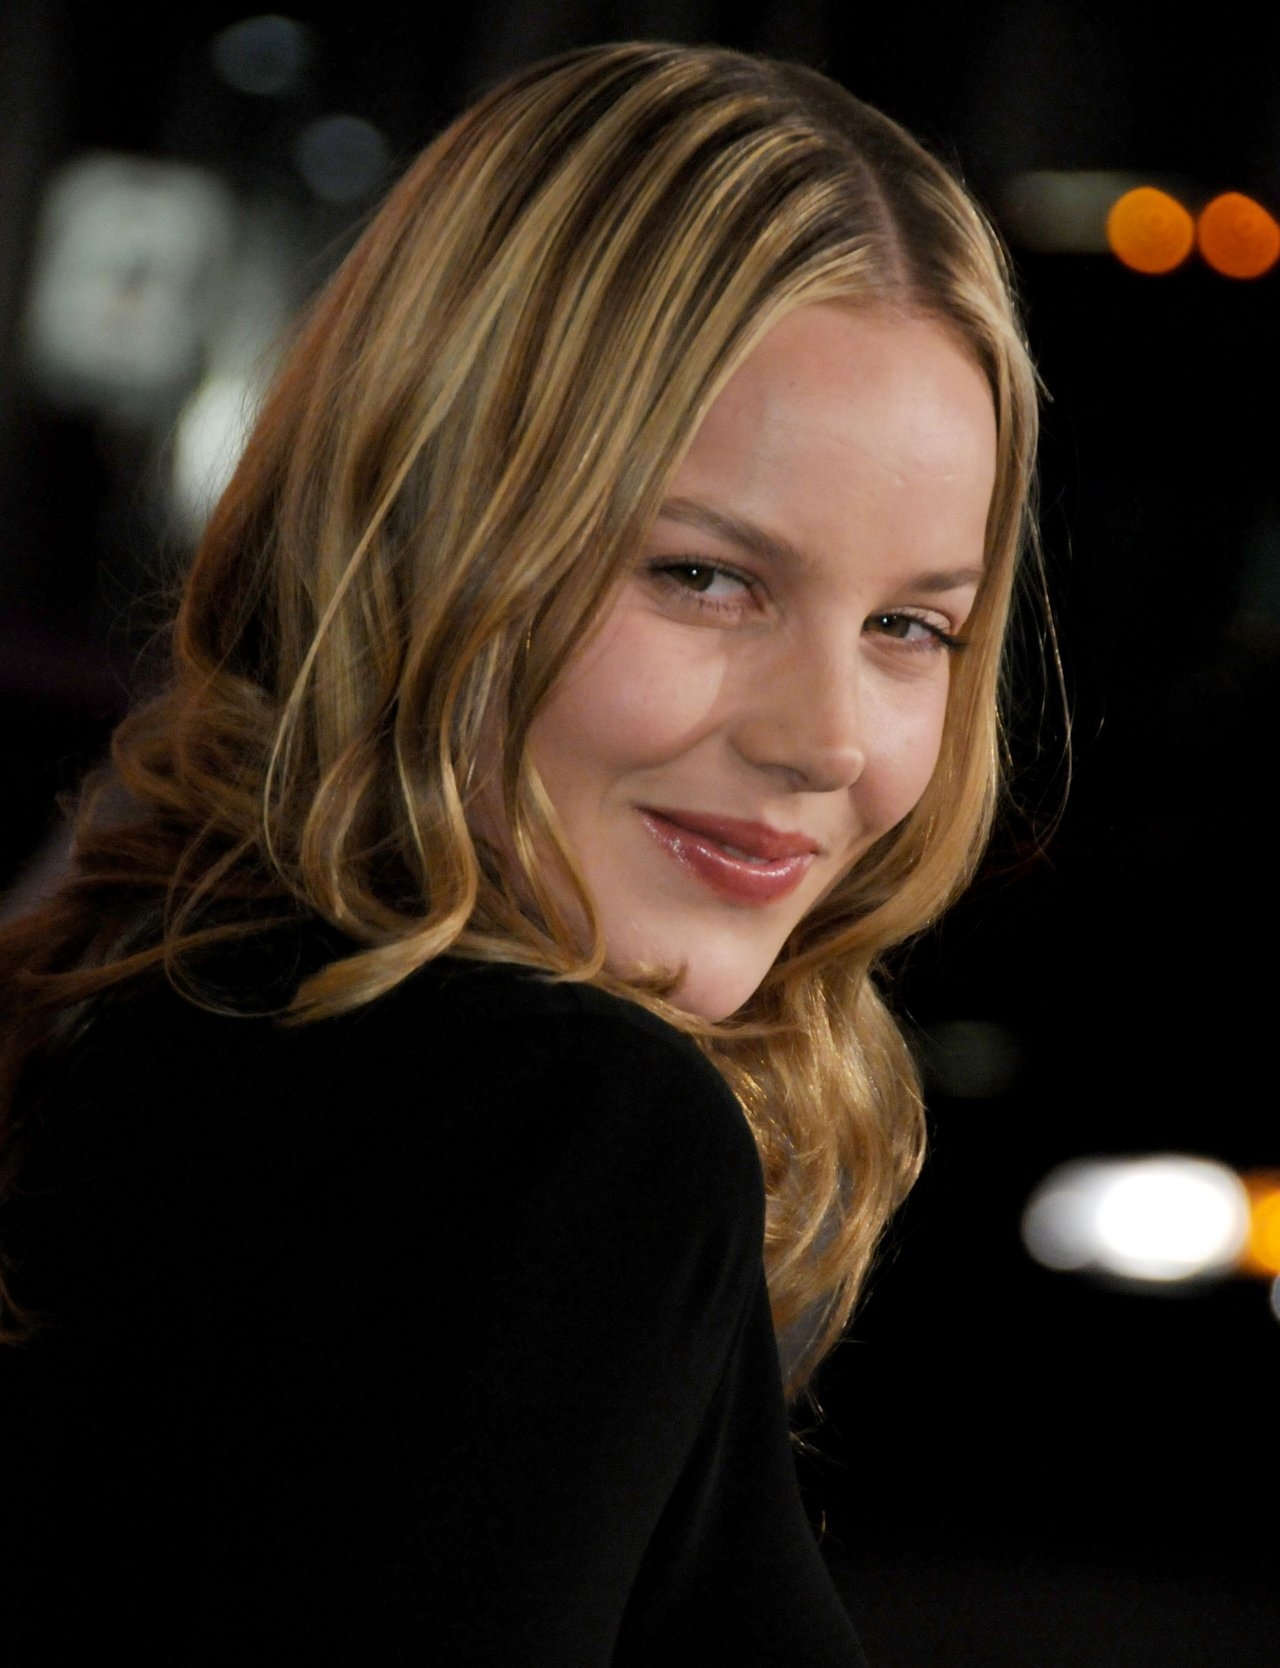 Abbie Cornish wallpape... Abbie Cornish